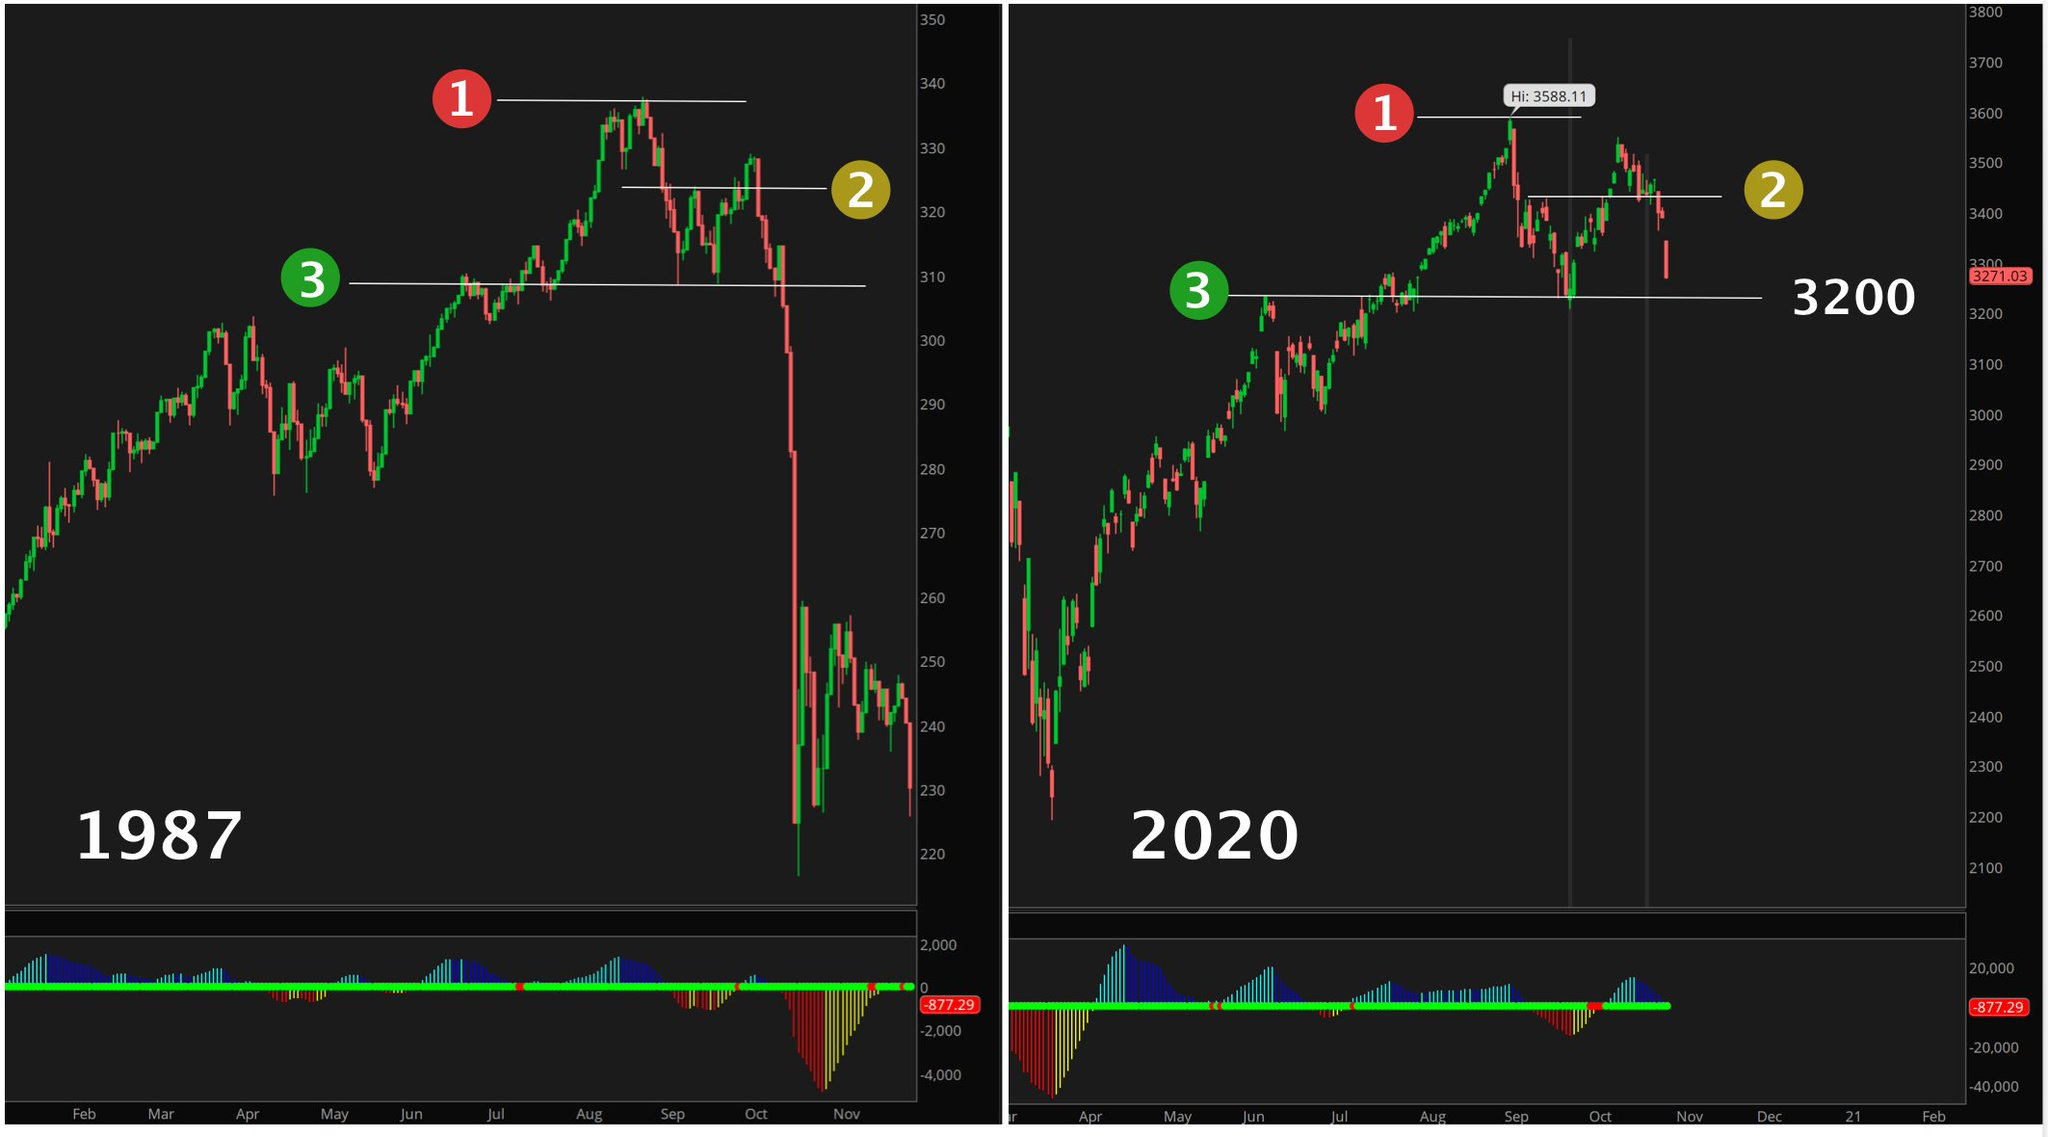 It is October after all -- another take on the 1987 SPX comparison